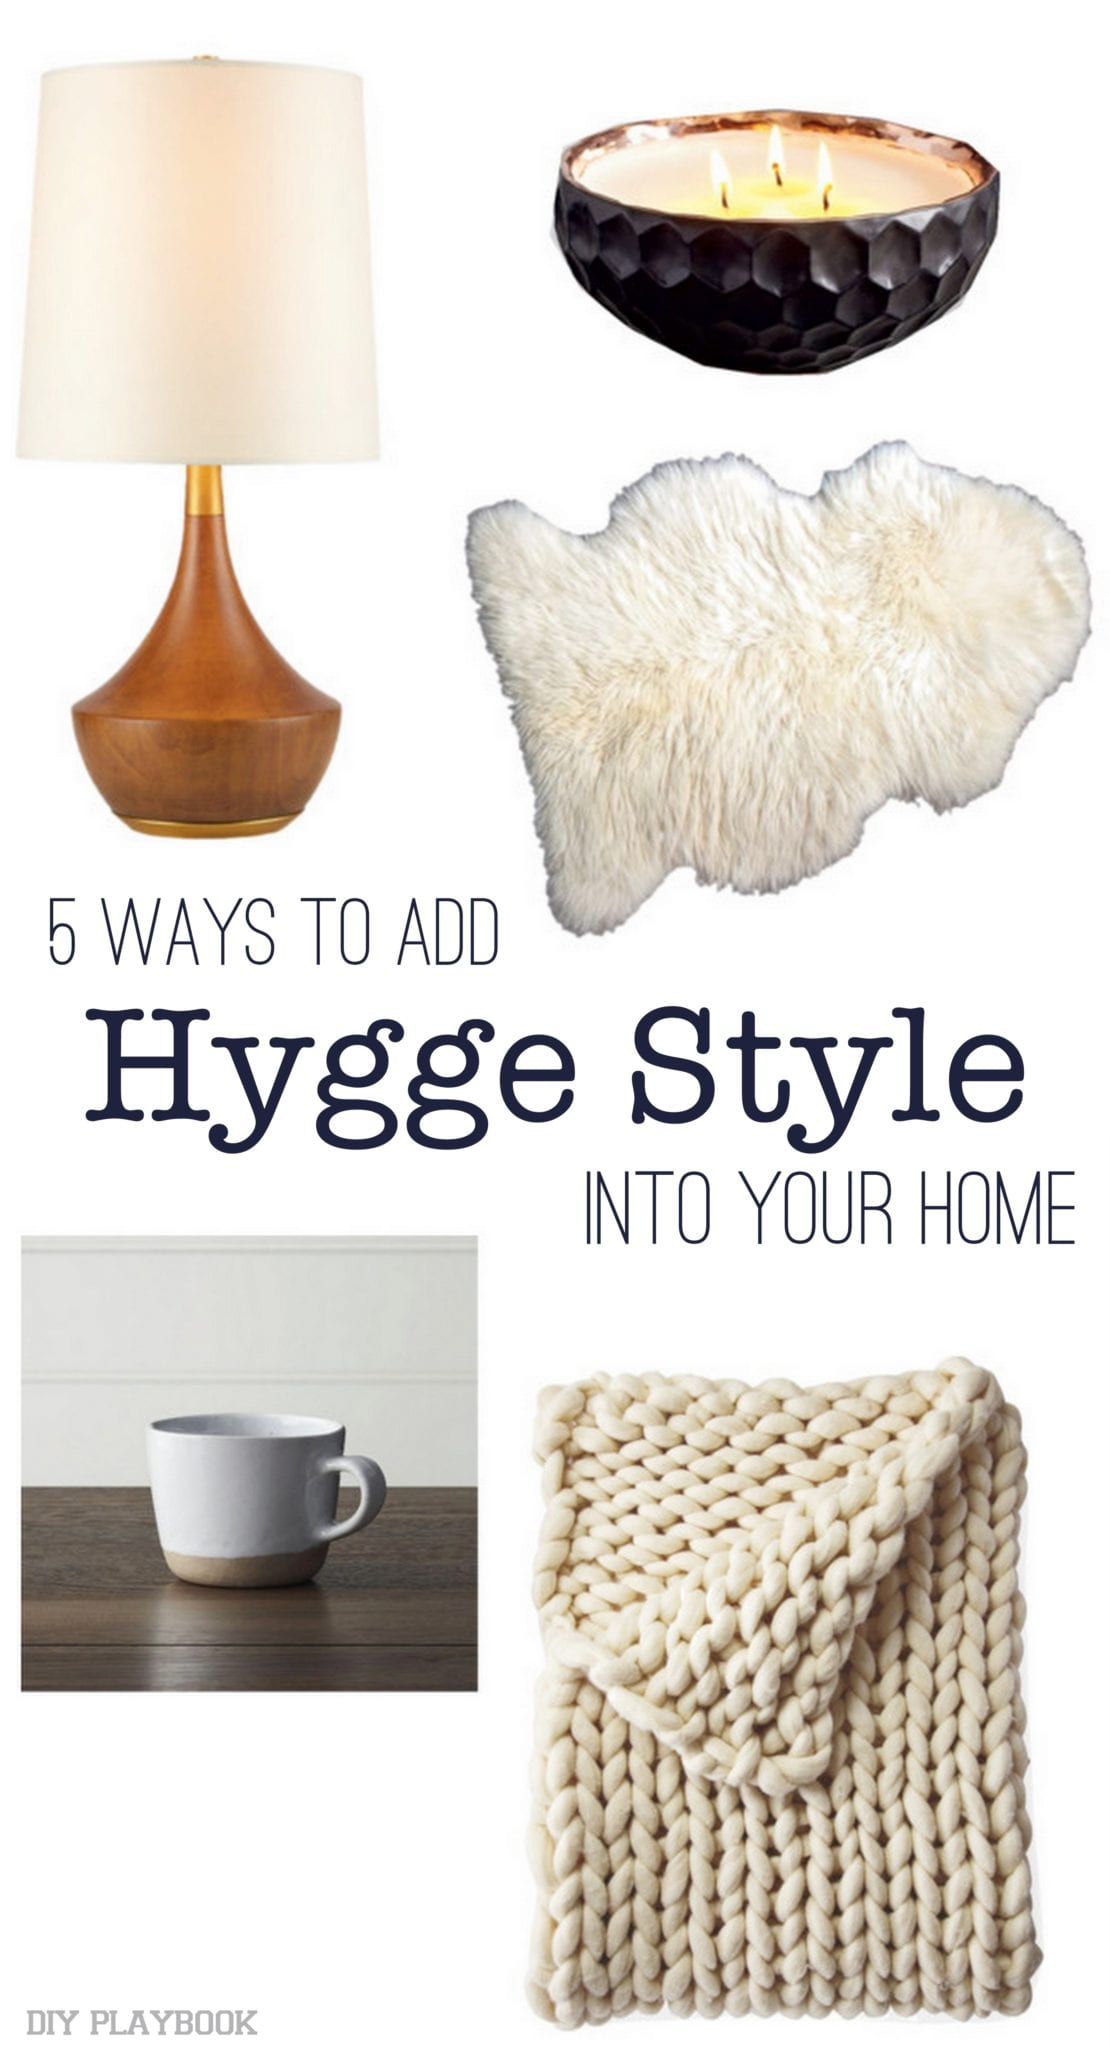 How to Add Hygge Style Into My Home